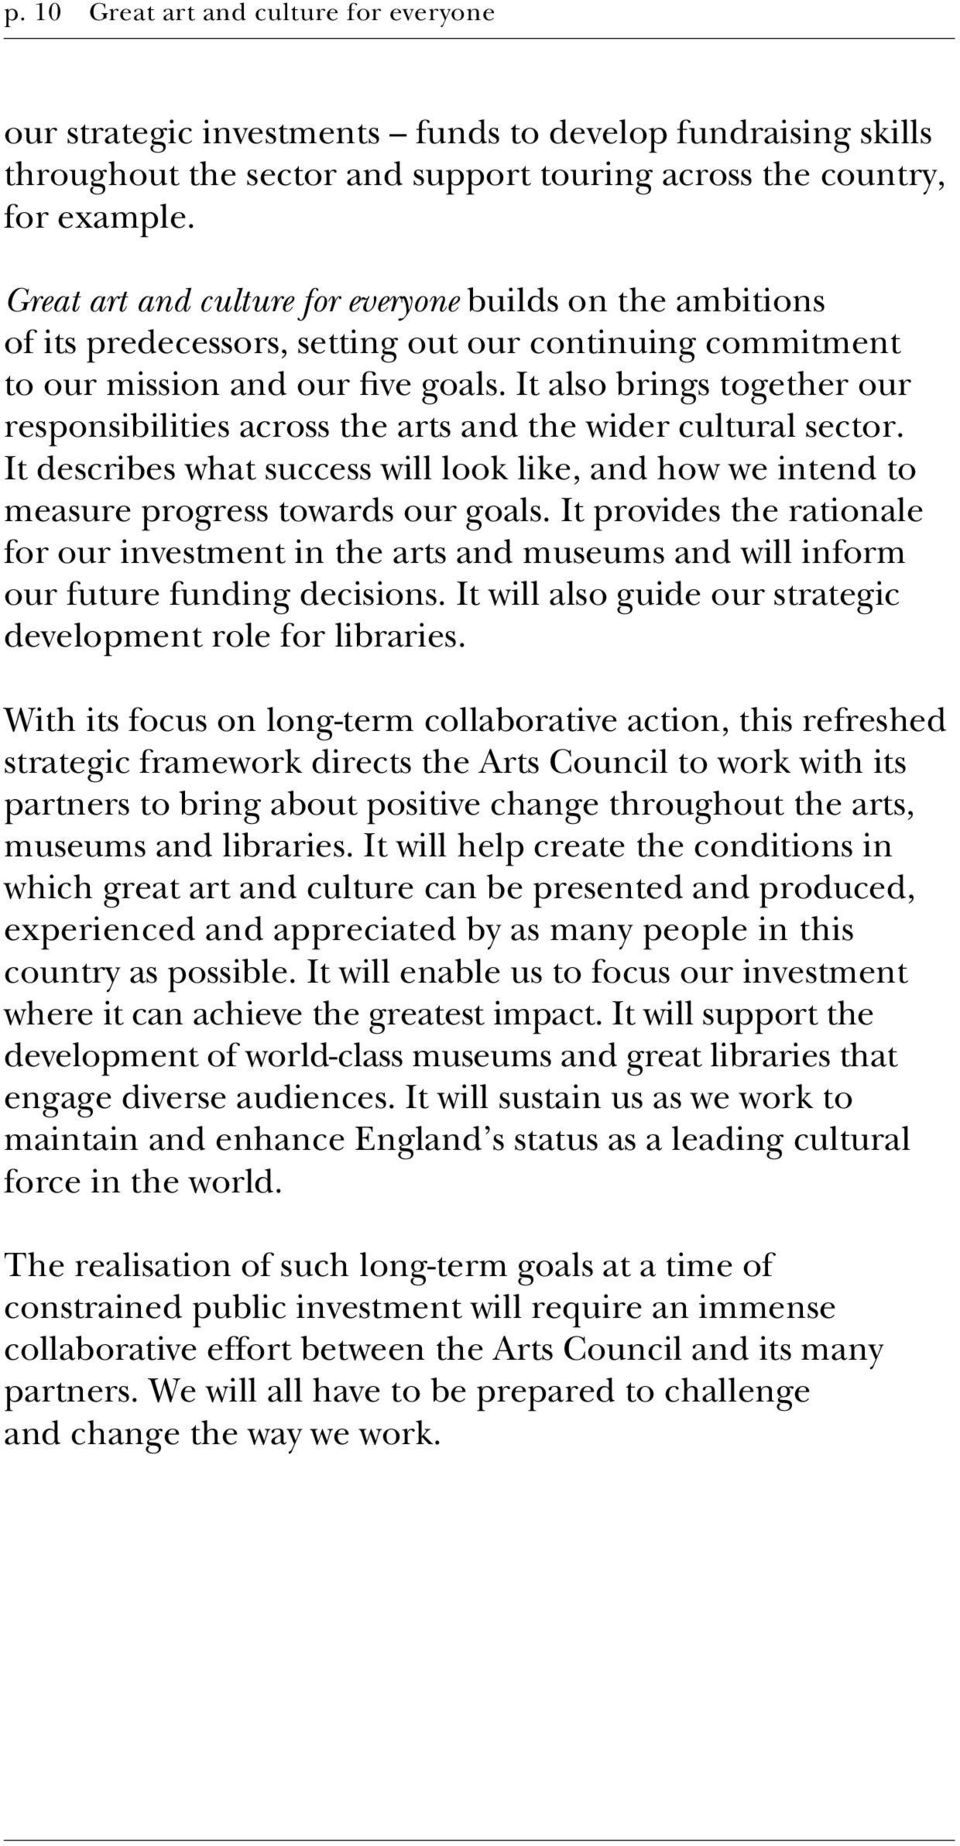 It also brings together our responsibilities across the arts and the wider cultural sector. It describes what success will look like, and how we intend to measure progress towards our goals.